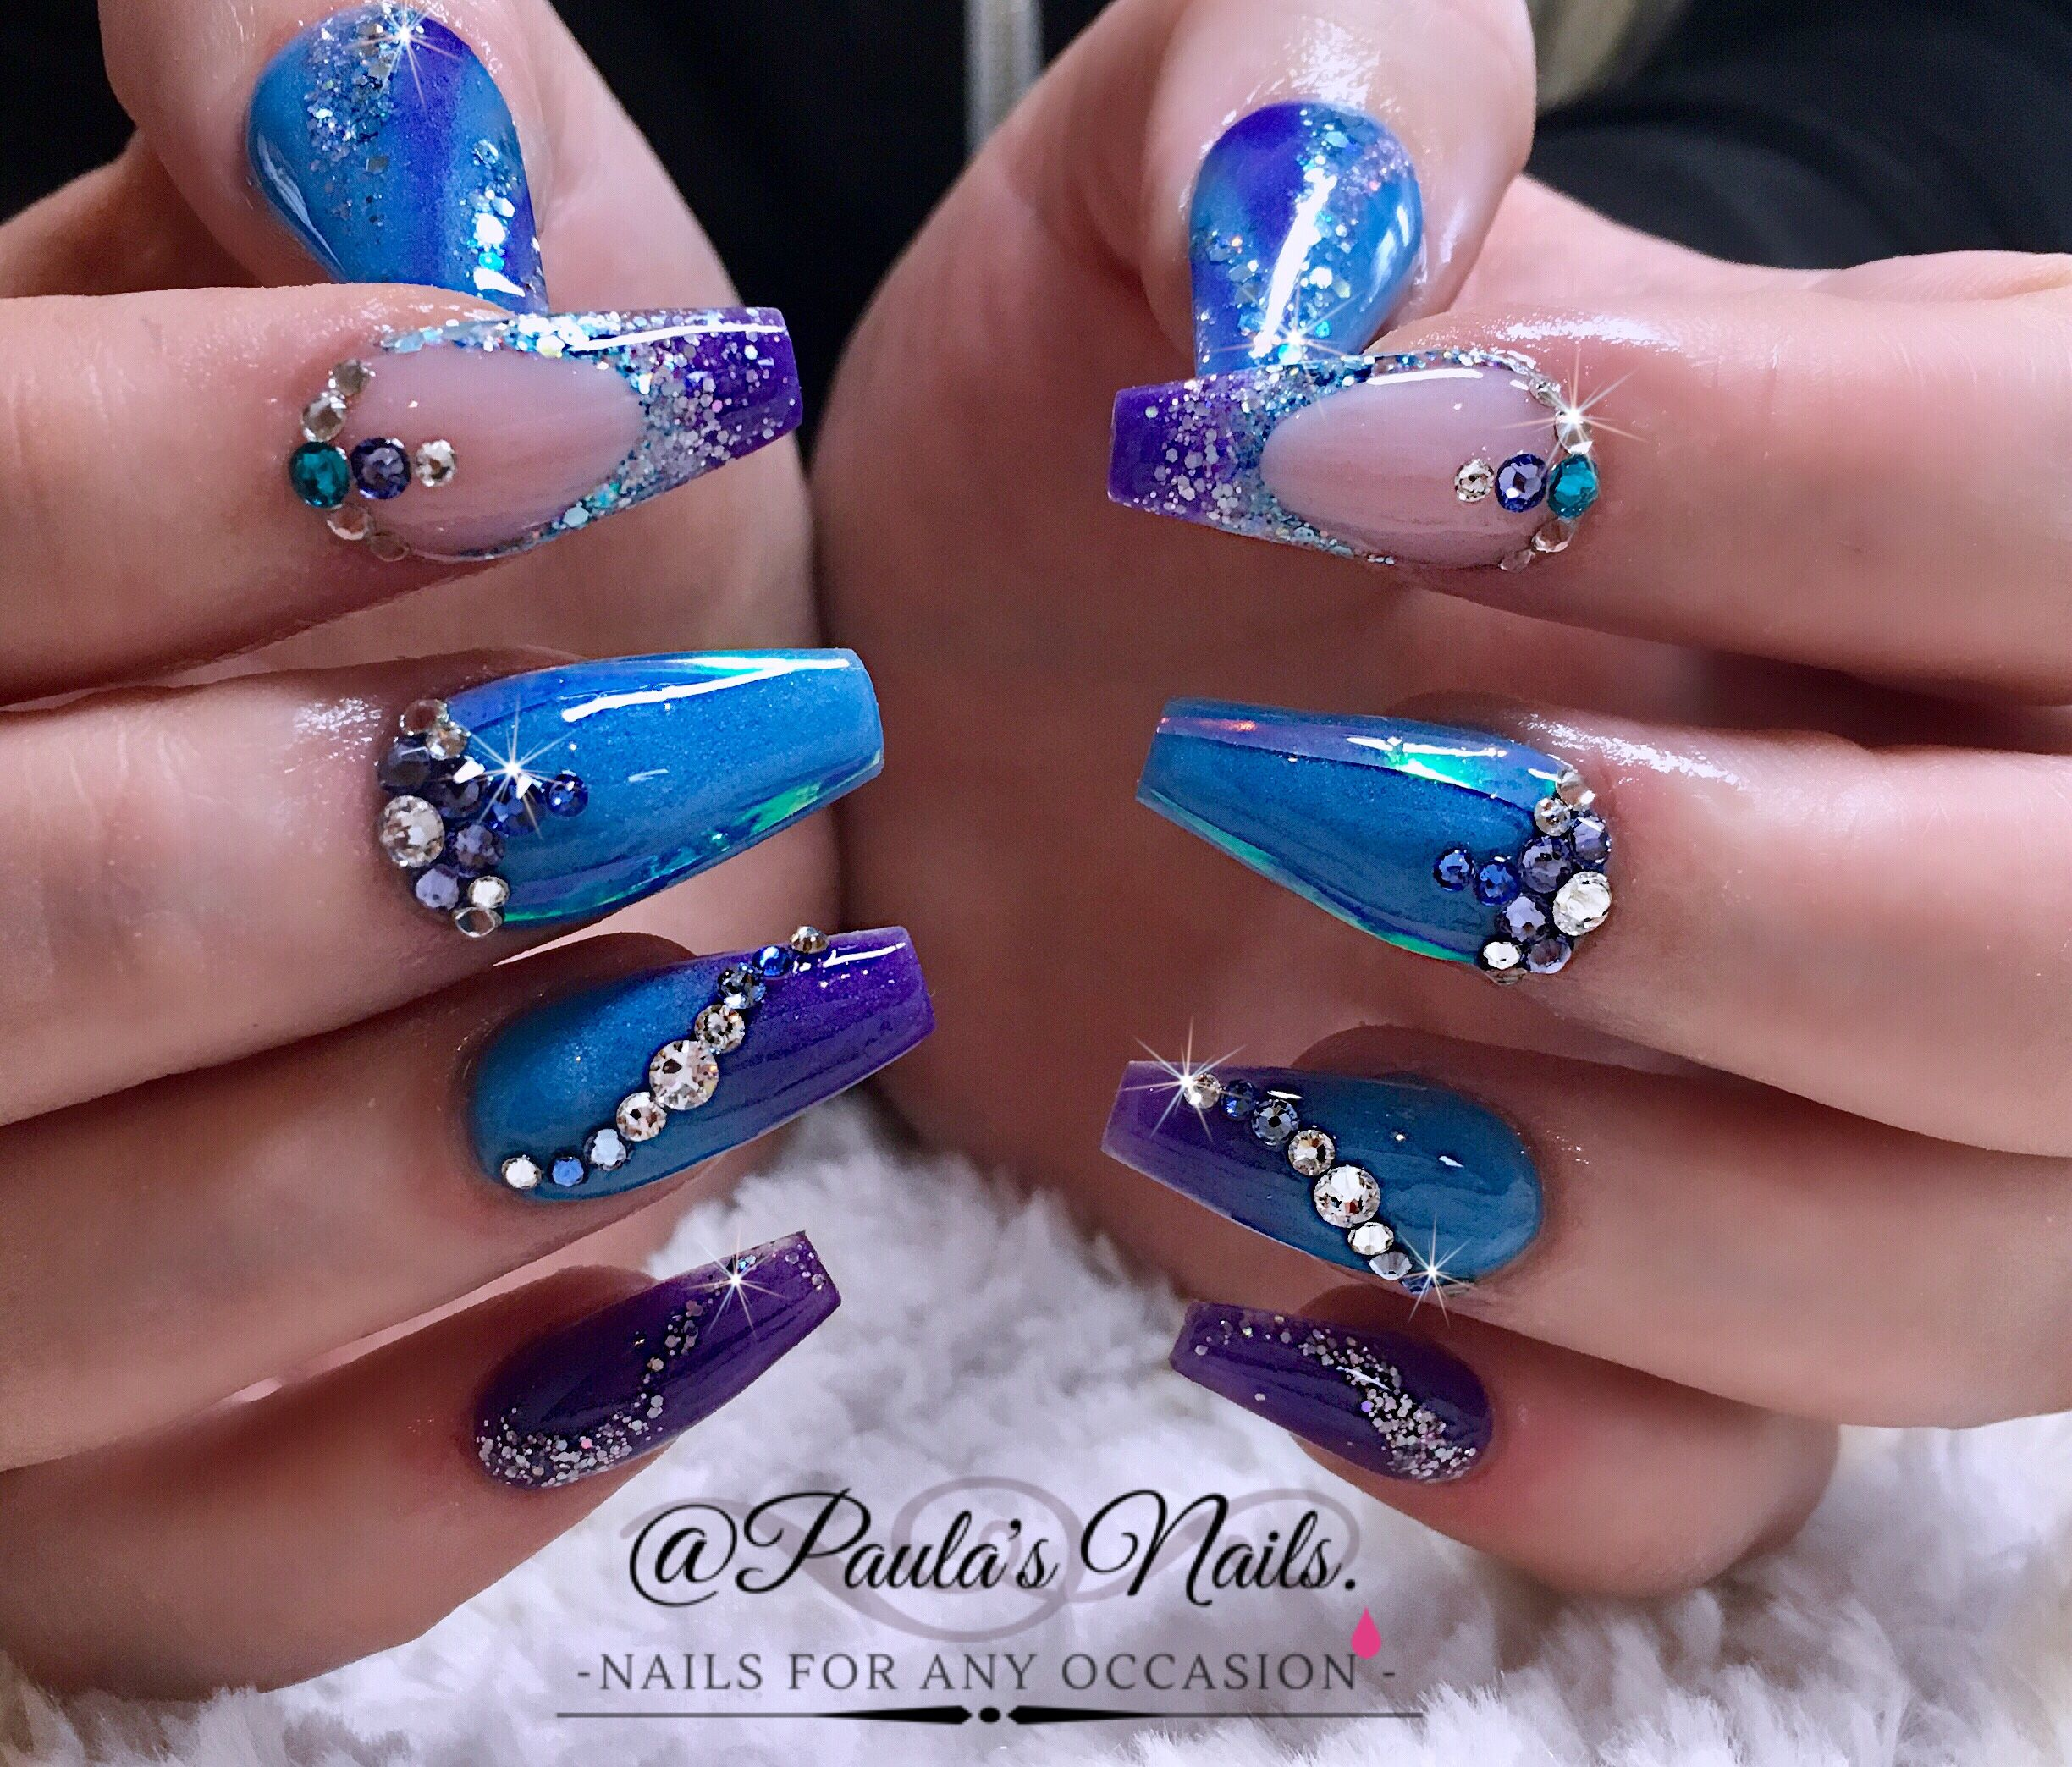 Cute Coffin Nails In Blue With Rhinestones! #nailart